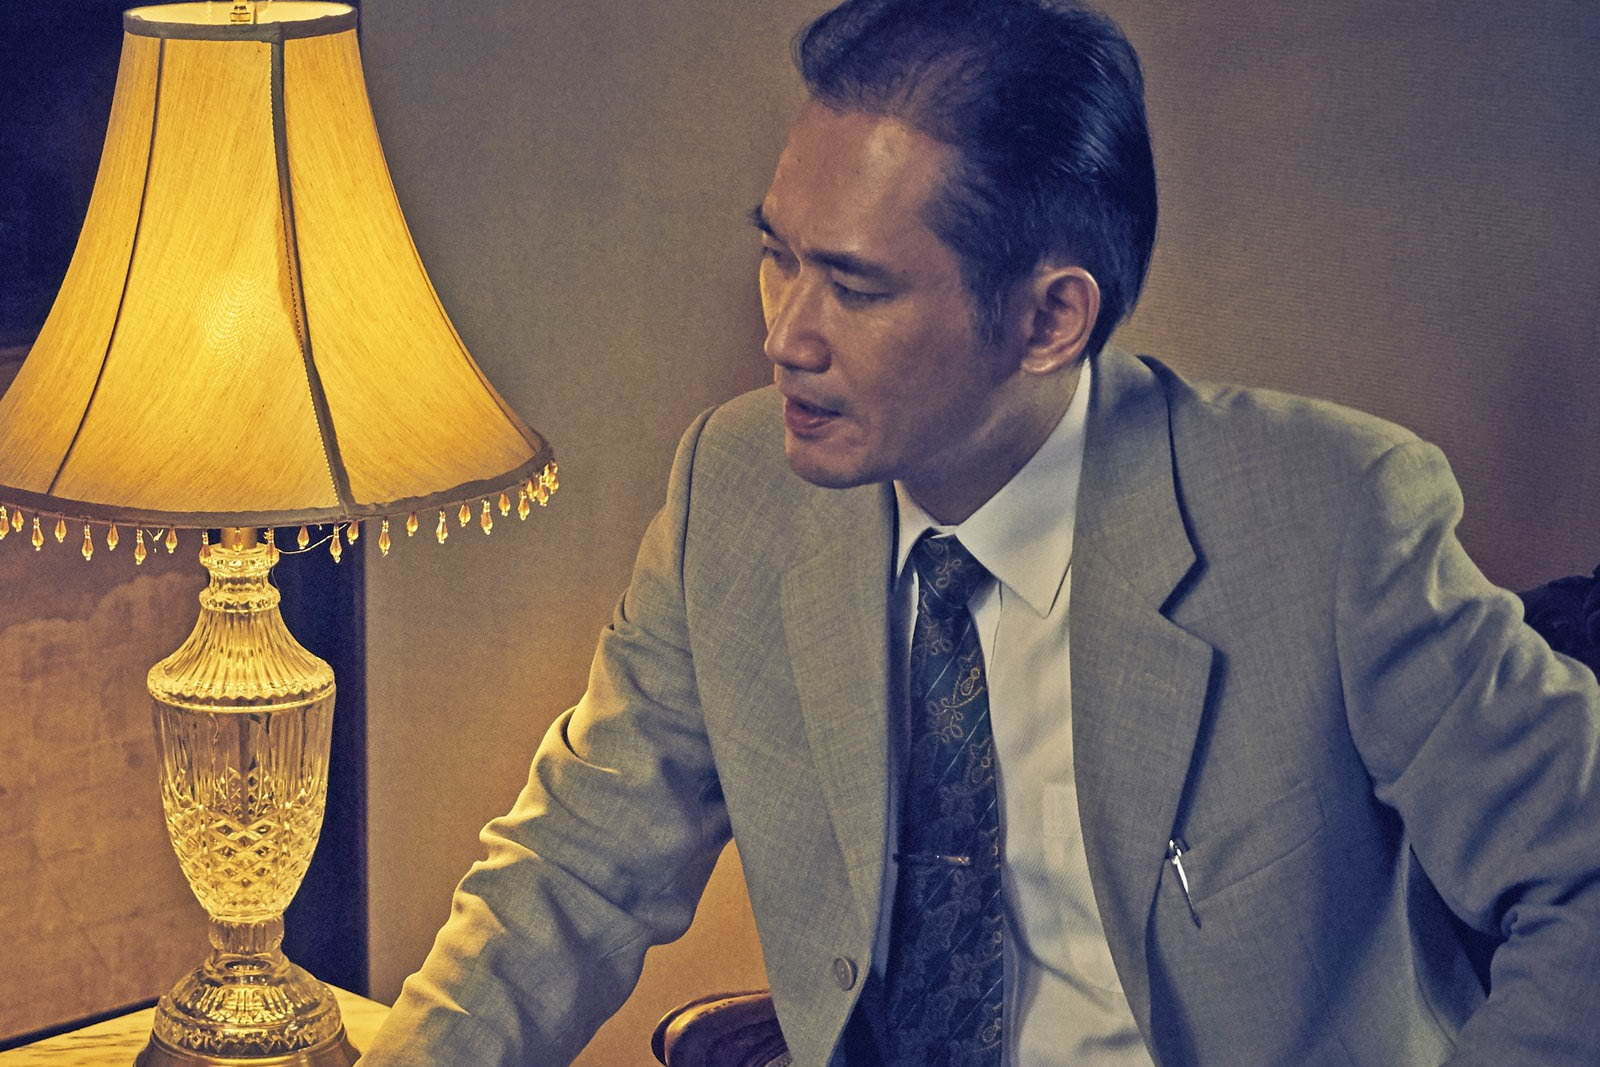 Movie, 血觀音(台灣, 2017年) / The Bold, The Corrupt, and the Beautiful(英文), 電影劇照, 角色與演員介紹